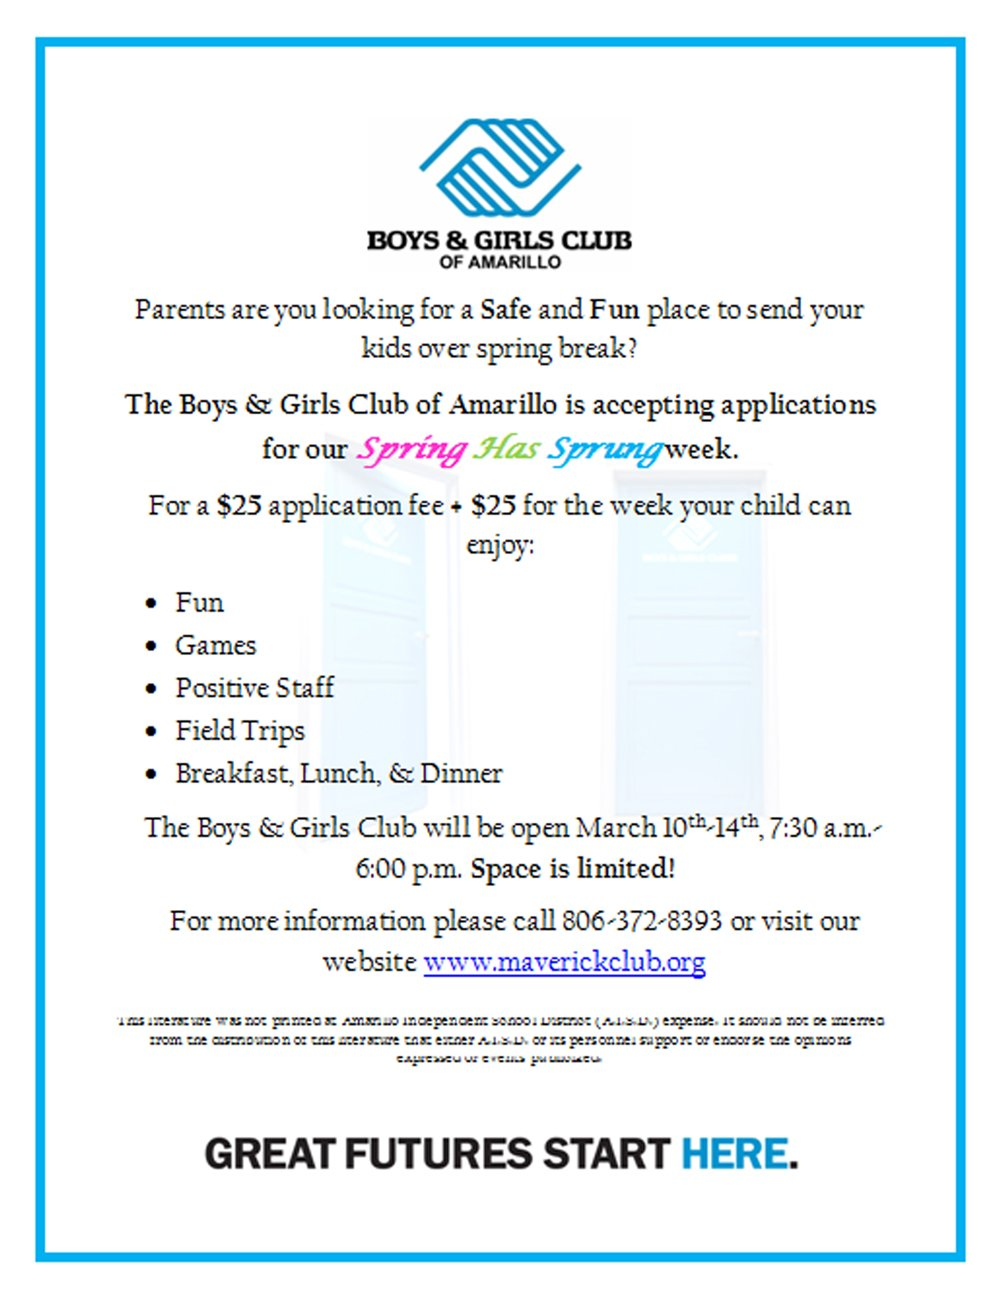 Boys & Girls Club - Spring Has Sprung